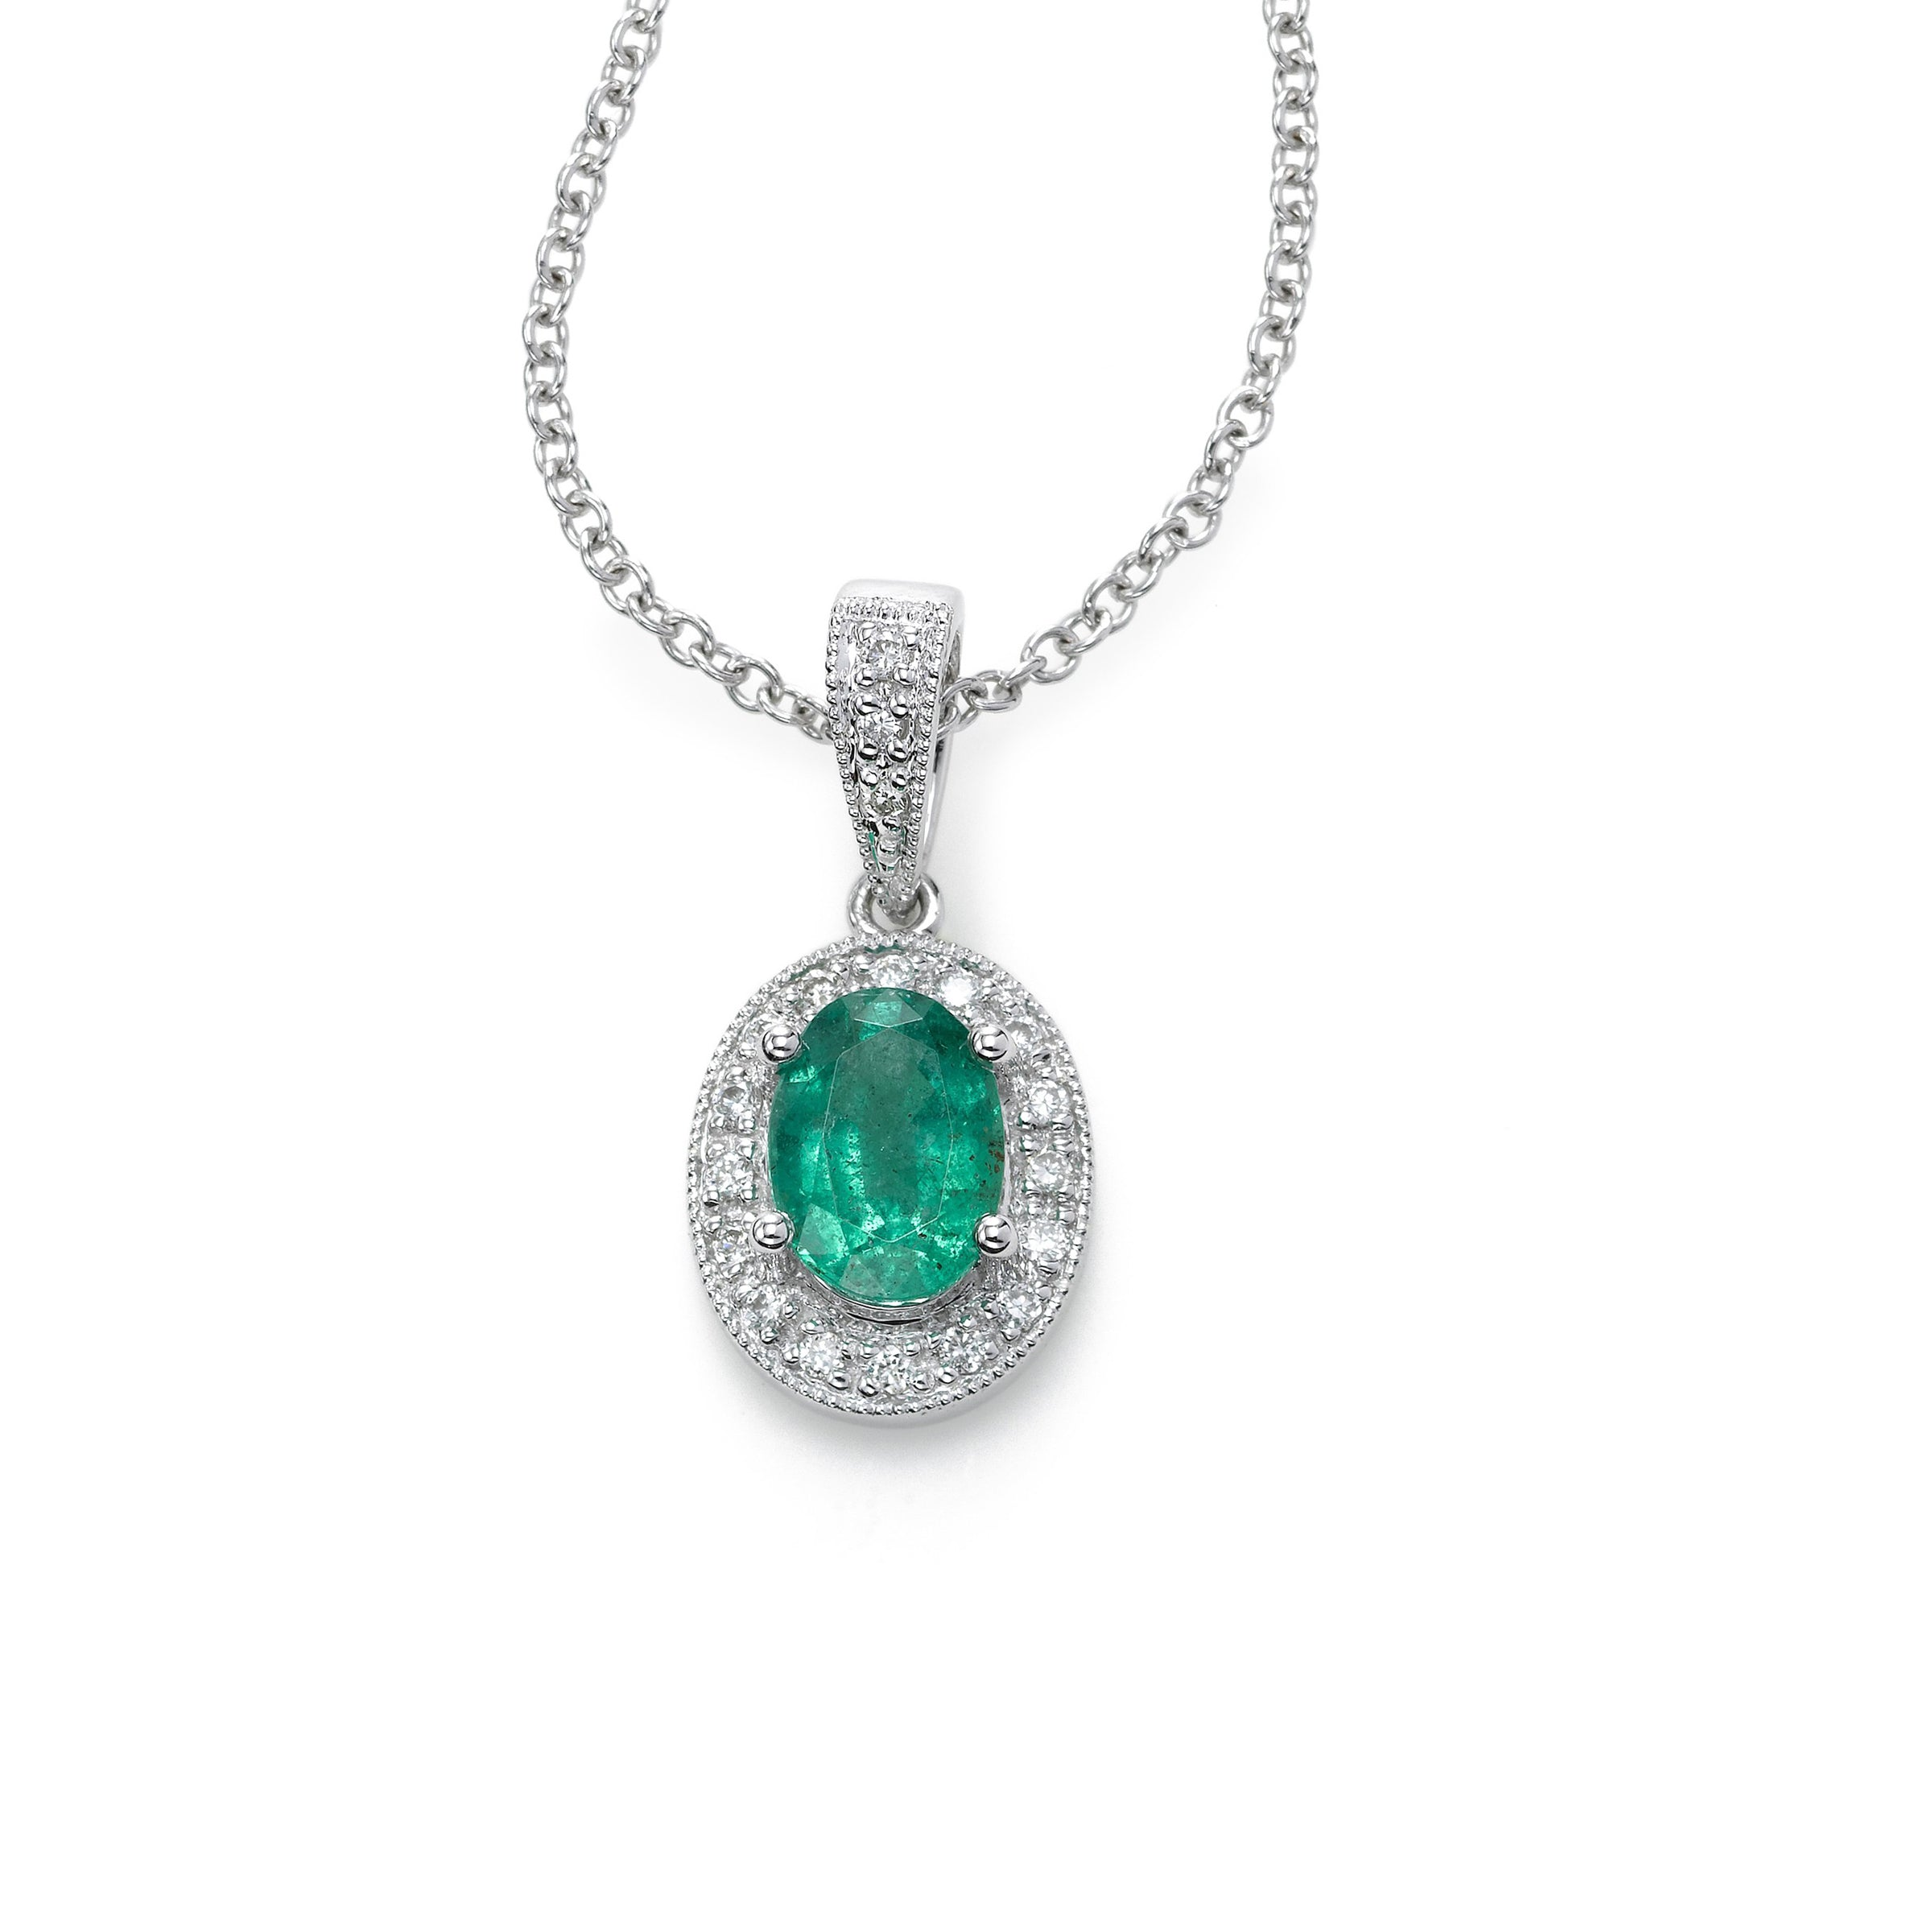 Oval Emerald Pendant with Diamonds, 14K White Gold